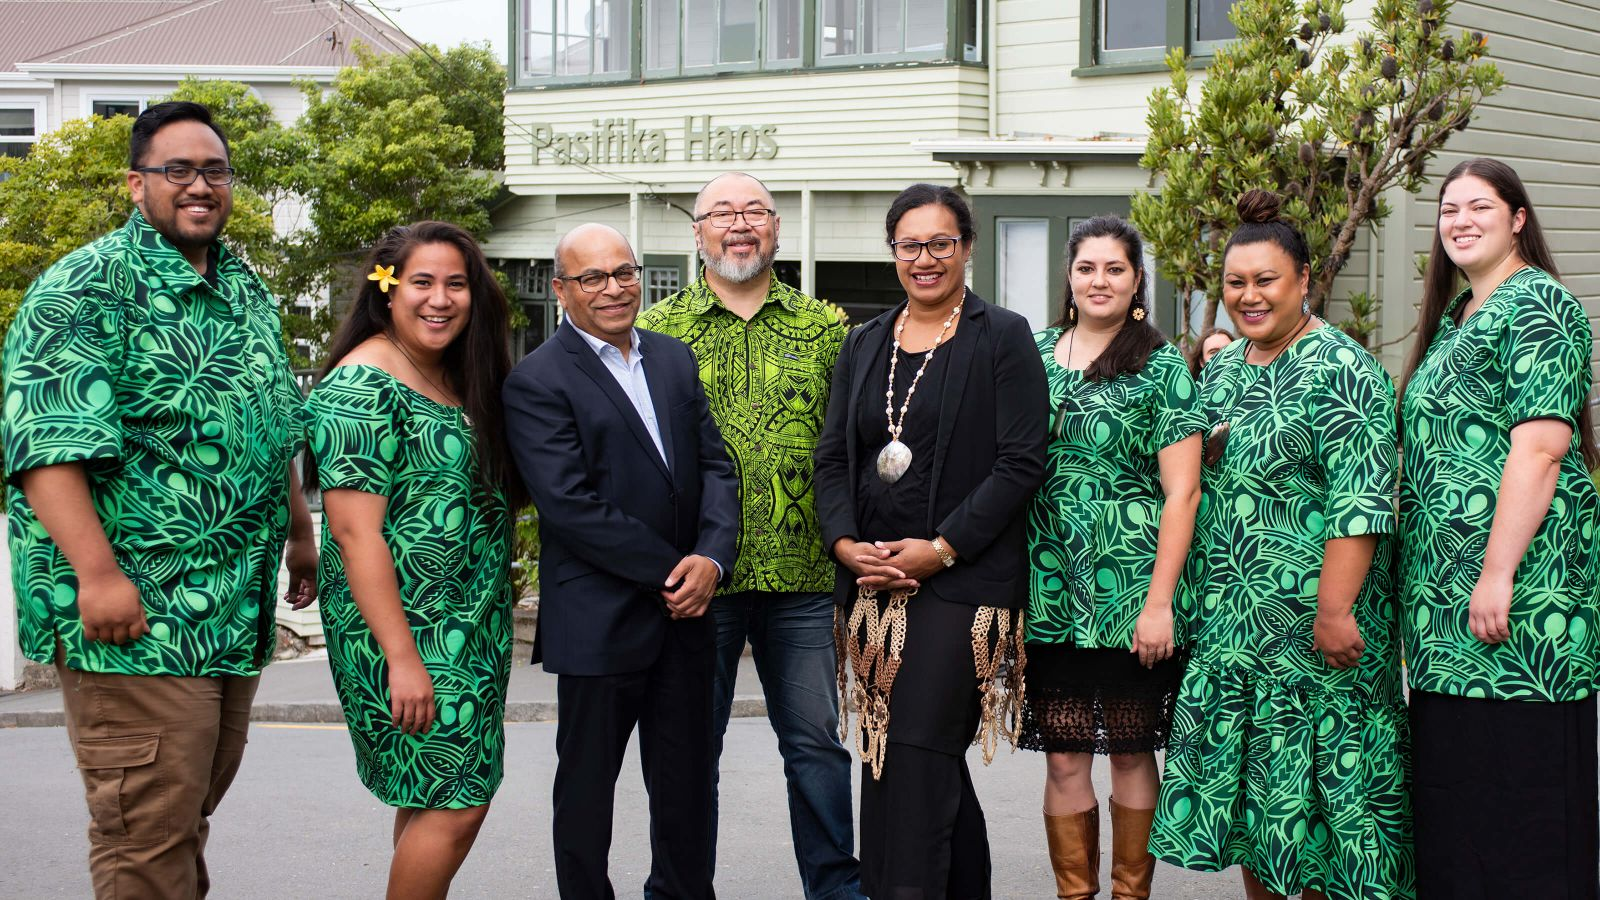 Pasifika Student Success team, in front of the Pasifika Haos on Mount Street